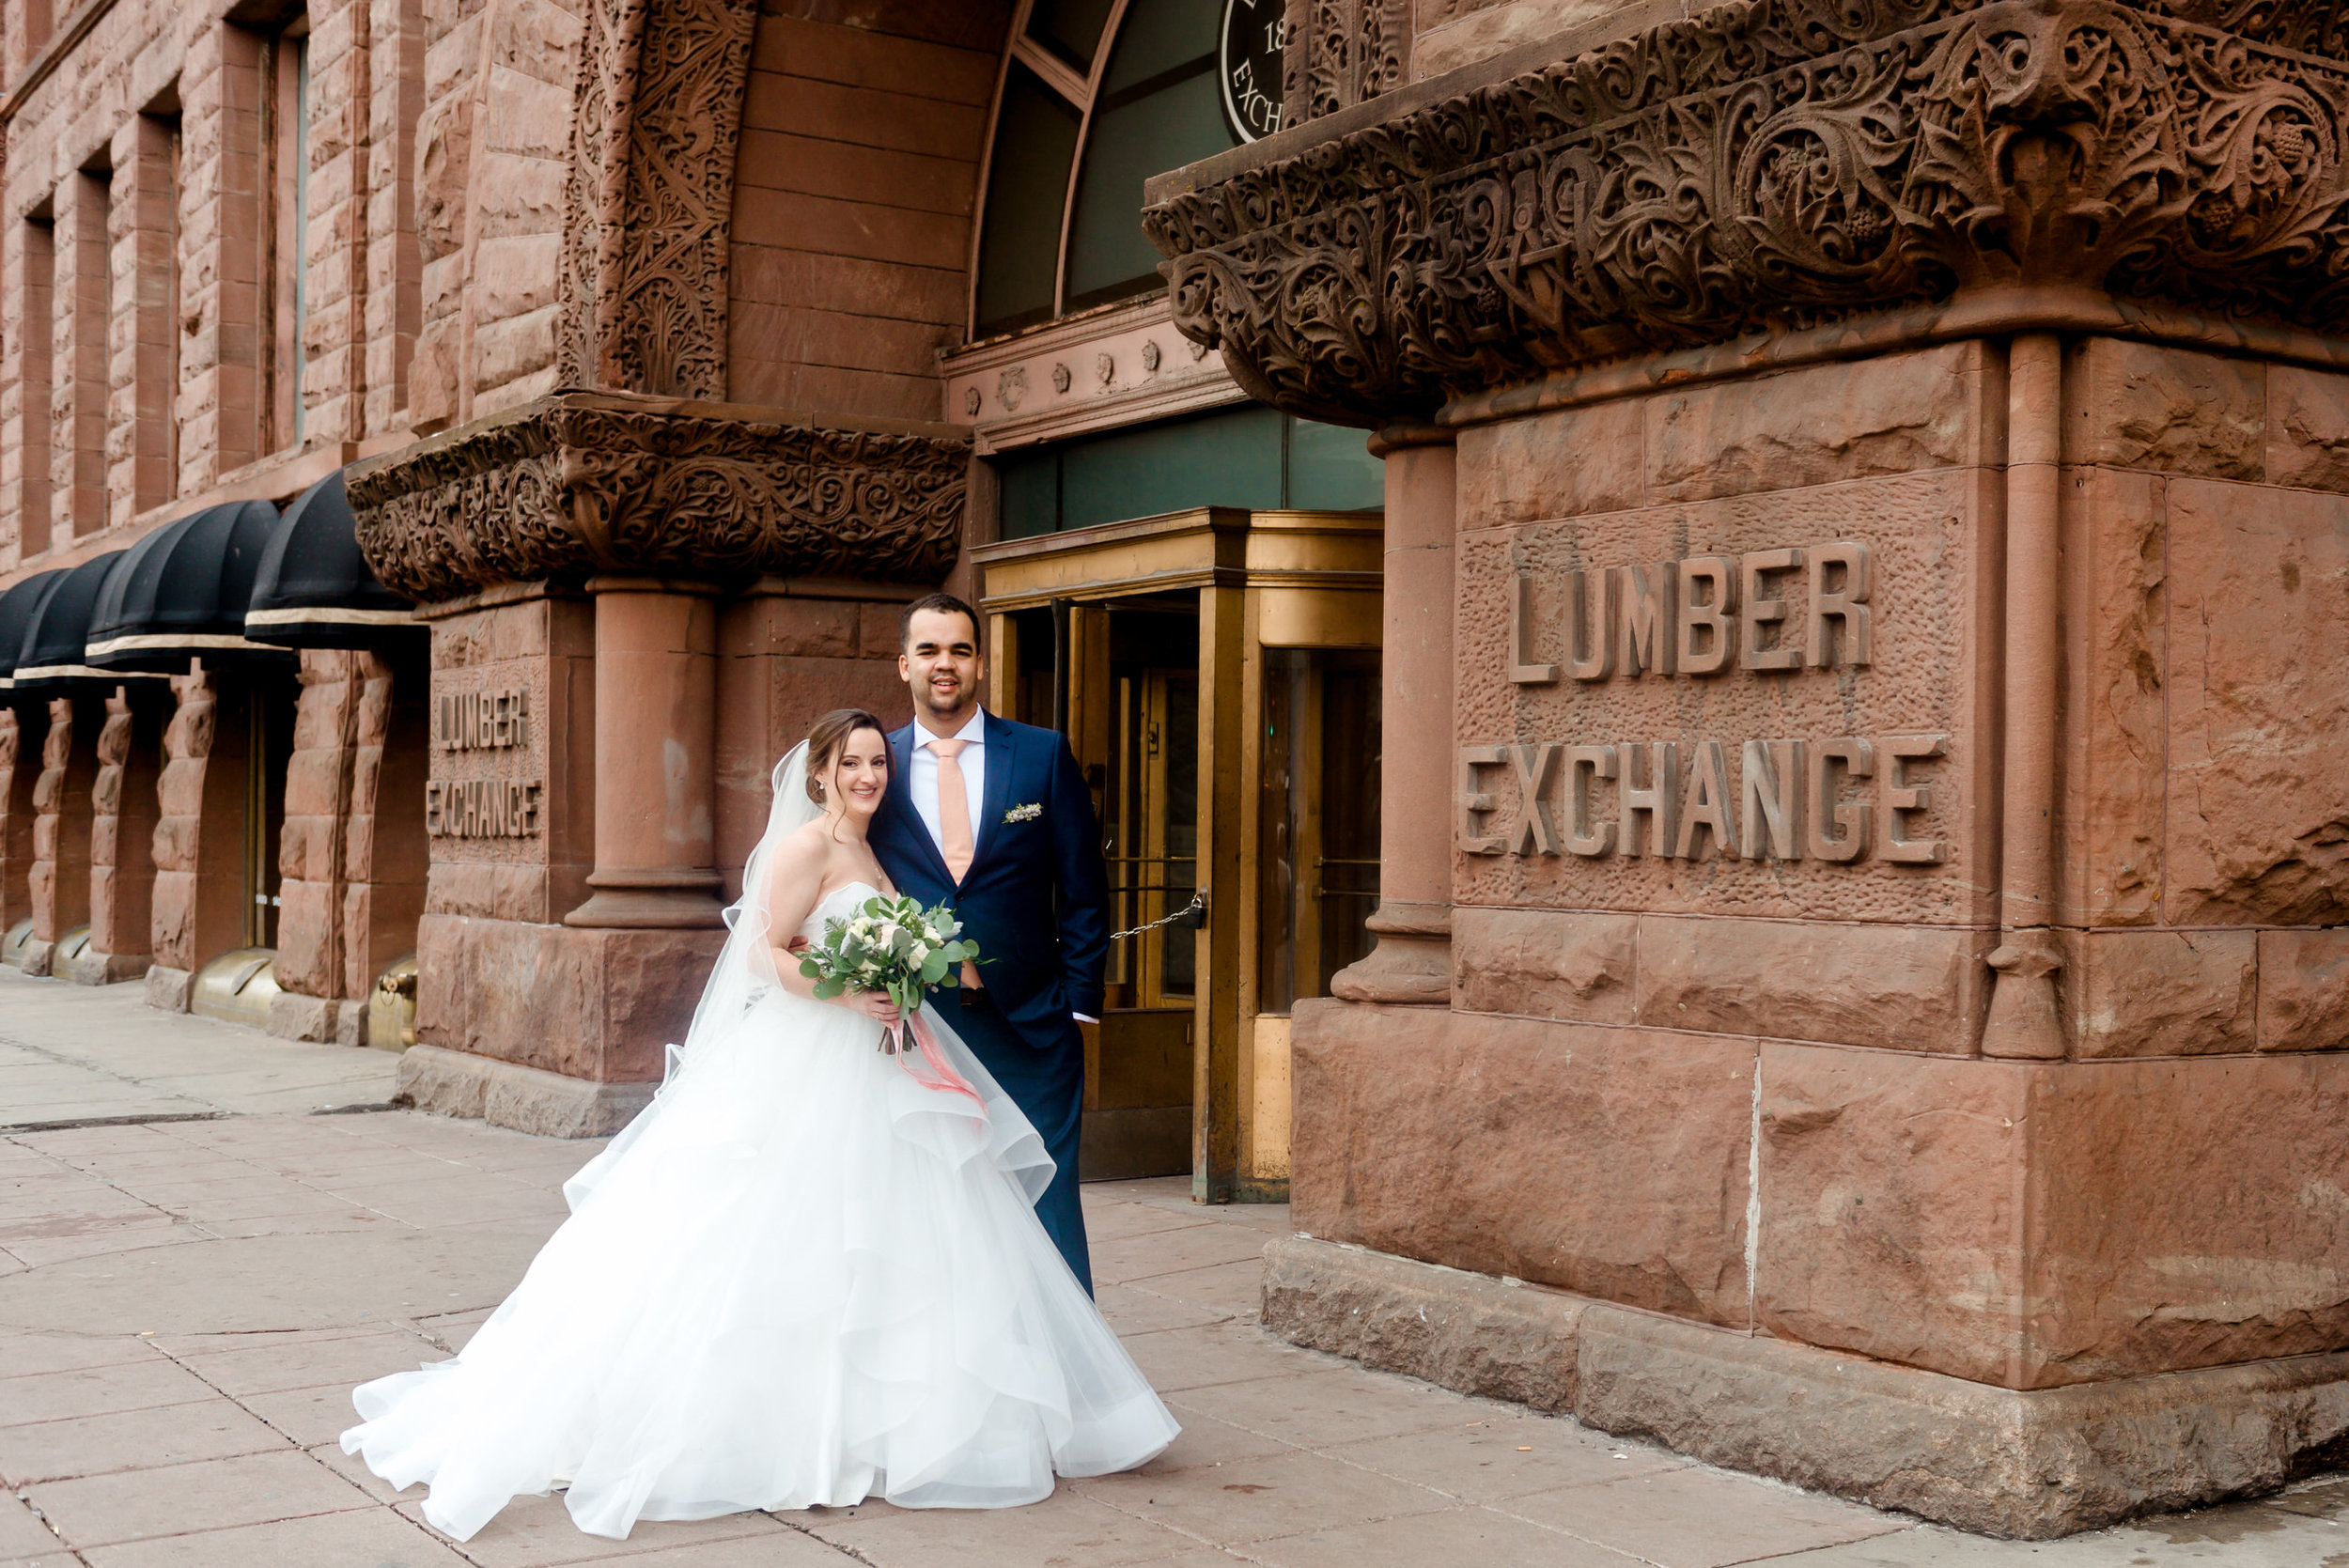 Lumber Exchange Event Center Minneapolis Wedding